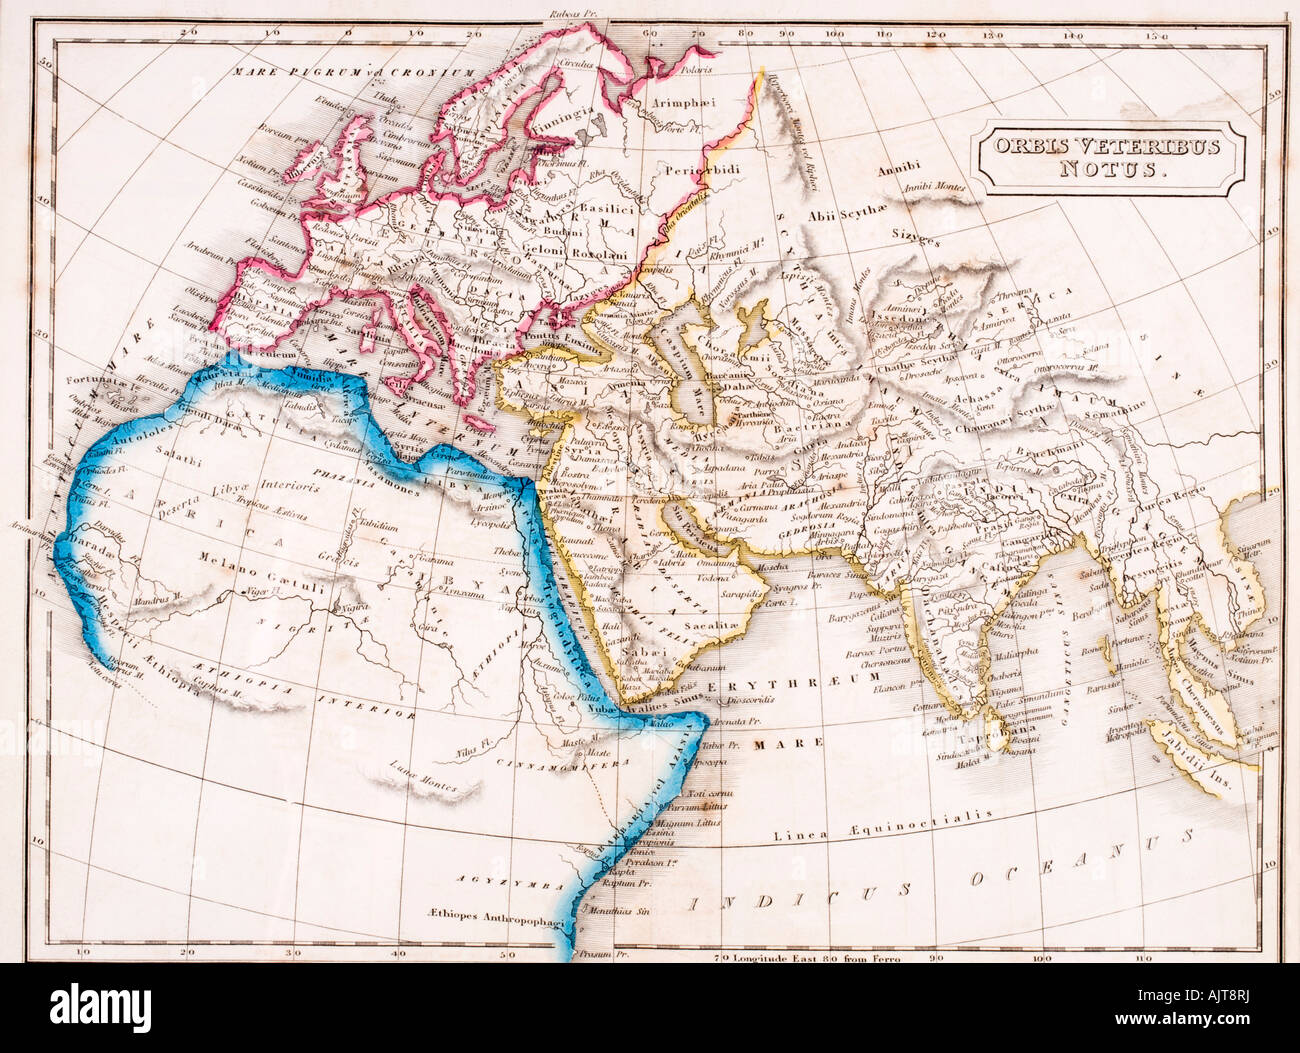 Map of Europe Northern Africa and Western Asia Orbis Veteribus Notus ...